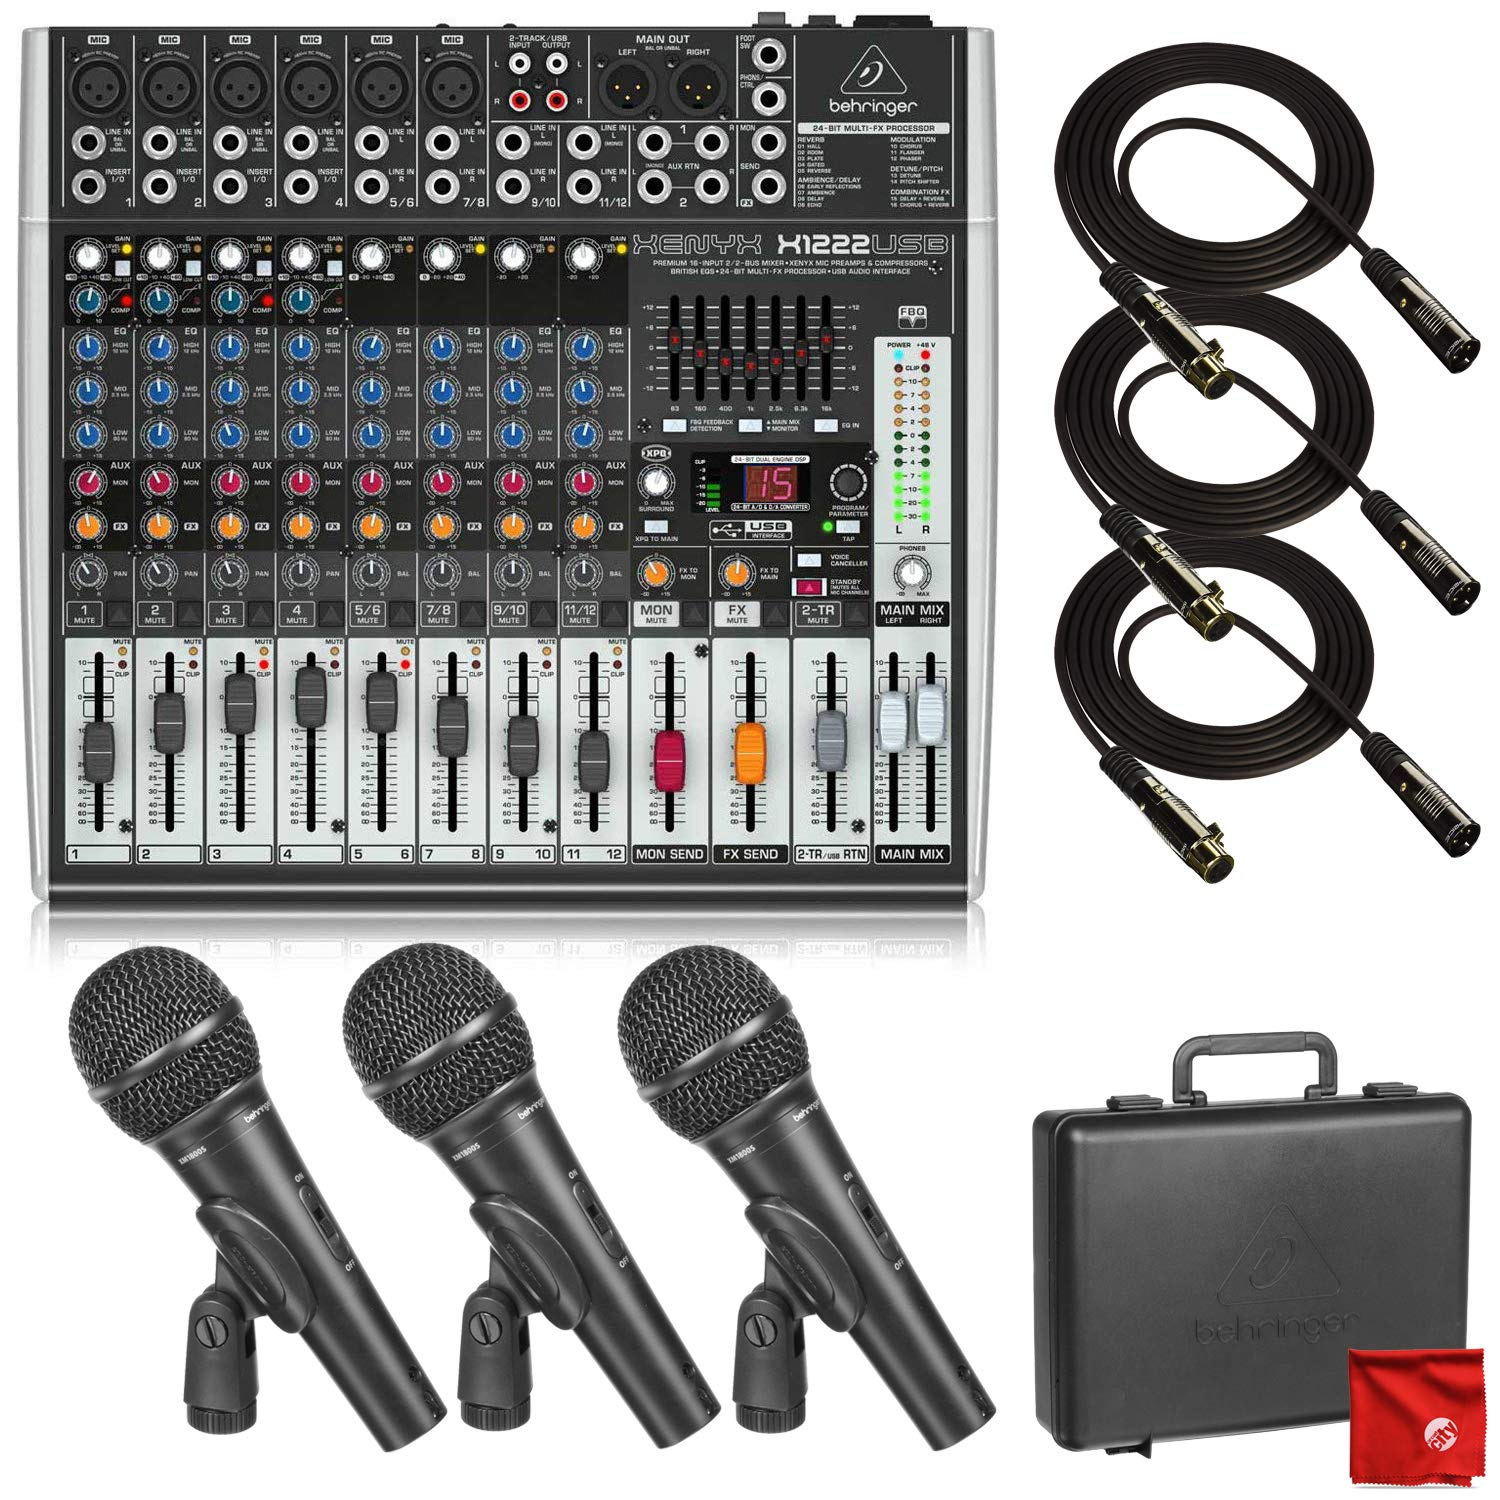 Behringer Xenyx X1222USB Premium 16-Input 2/2-Bus Mixer with USB/Audio Interface with Behringer Ultravoice XM1800S Dynamic Cardioid Vocal and Instrument Microphones and 3X Pro 10' XLR Cables